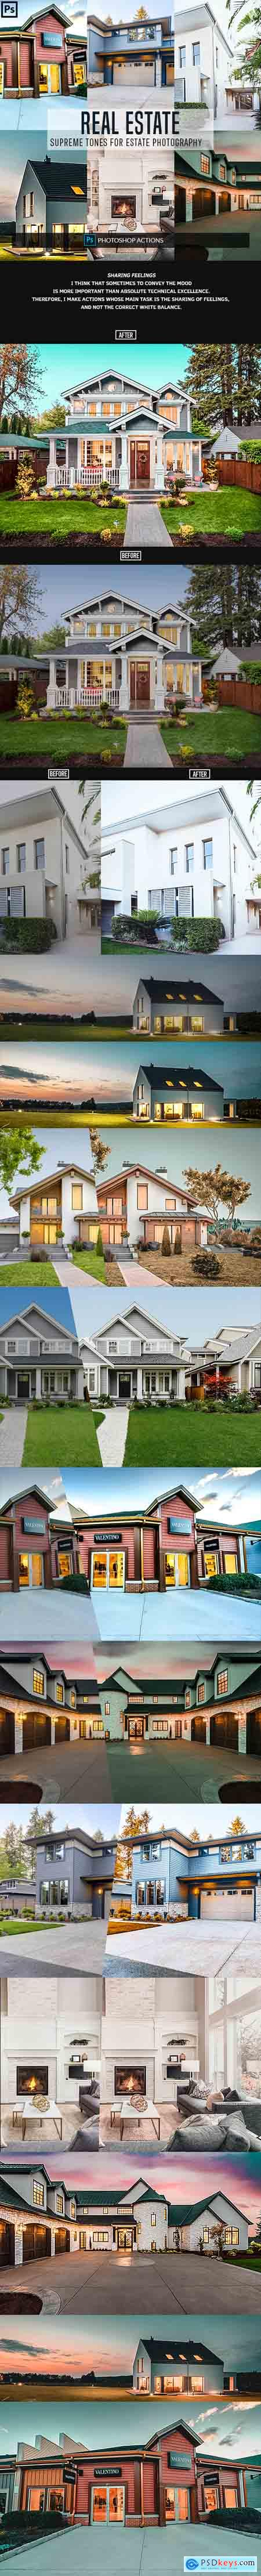 Graphicriver Real Estate Photoshop Actions